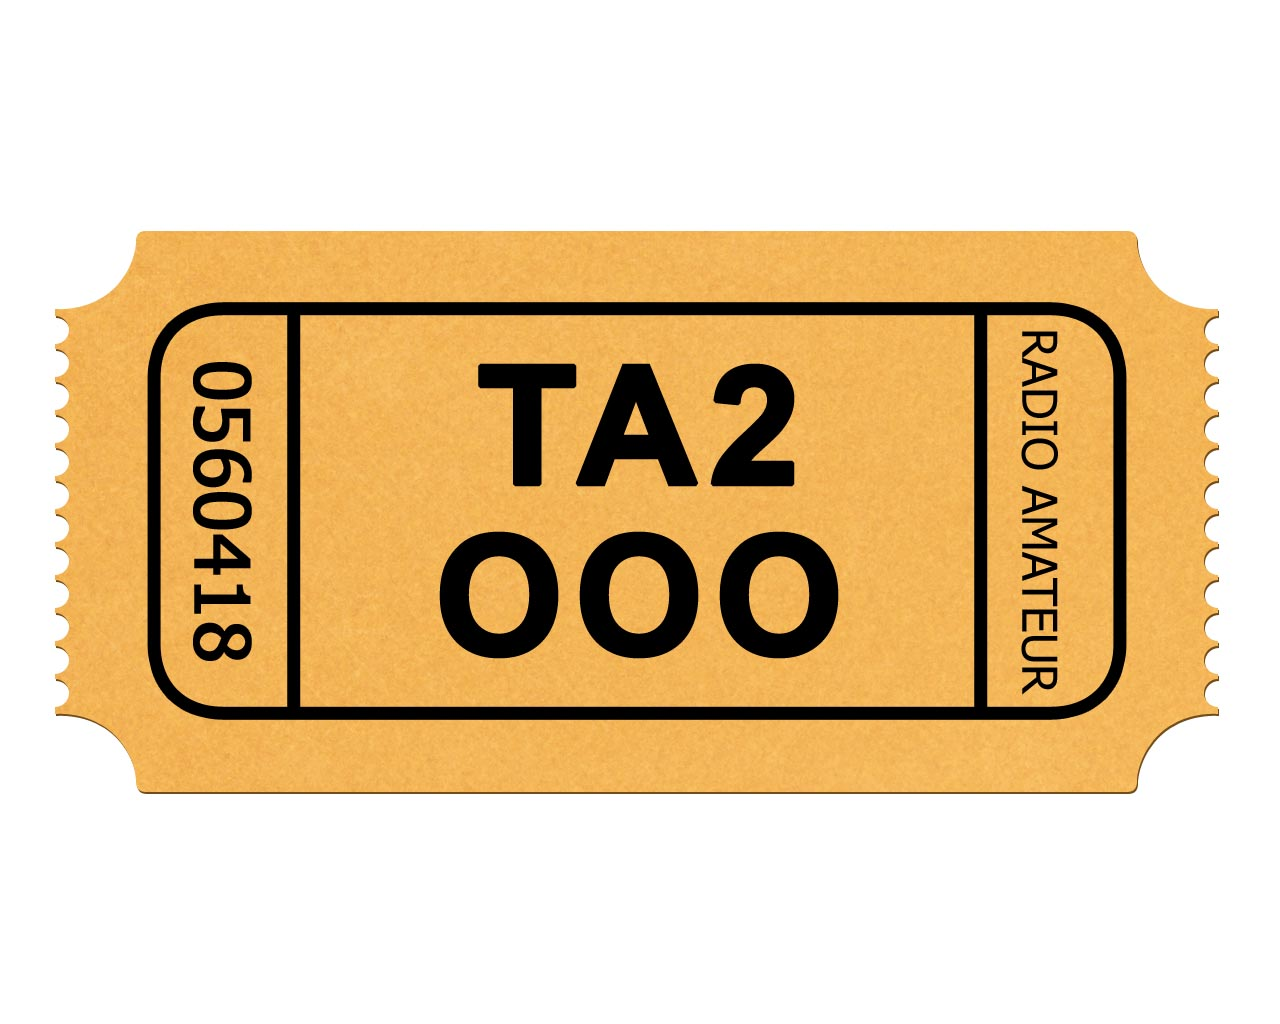 1280x1024 Admission Ticket Clipart